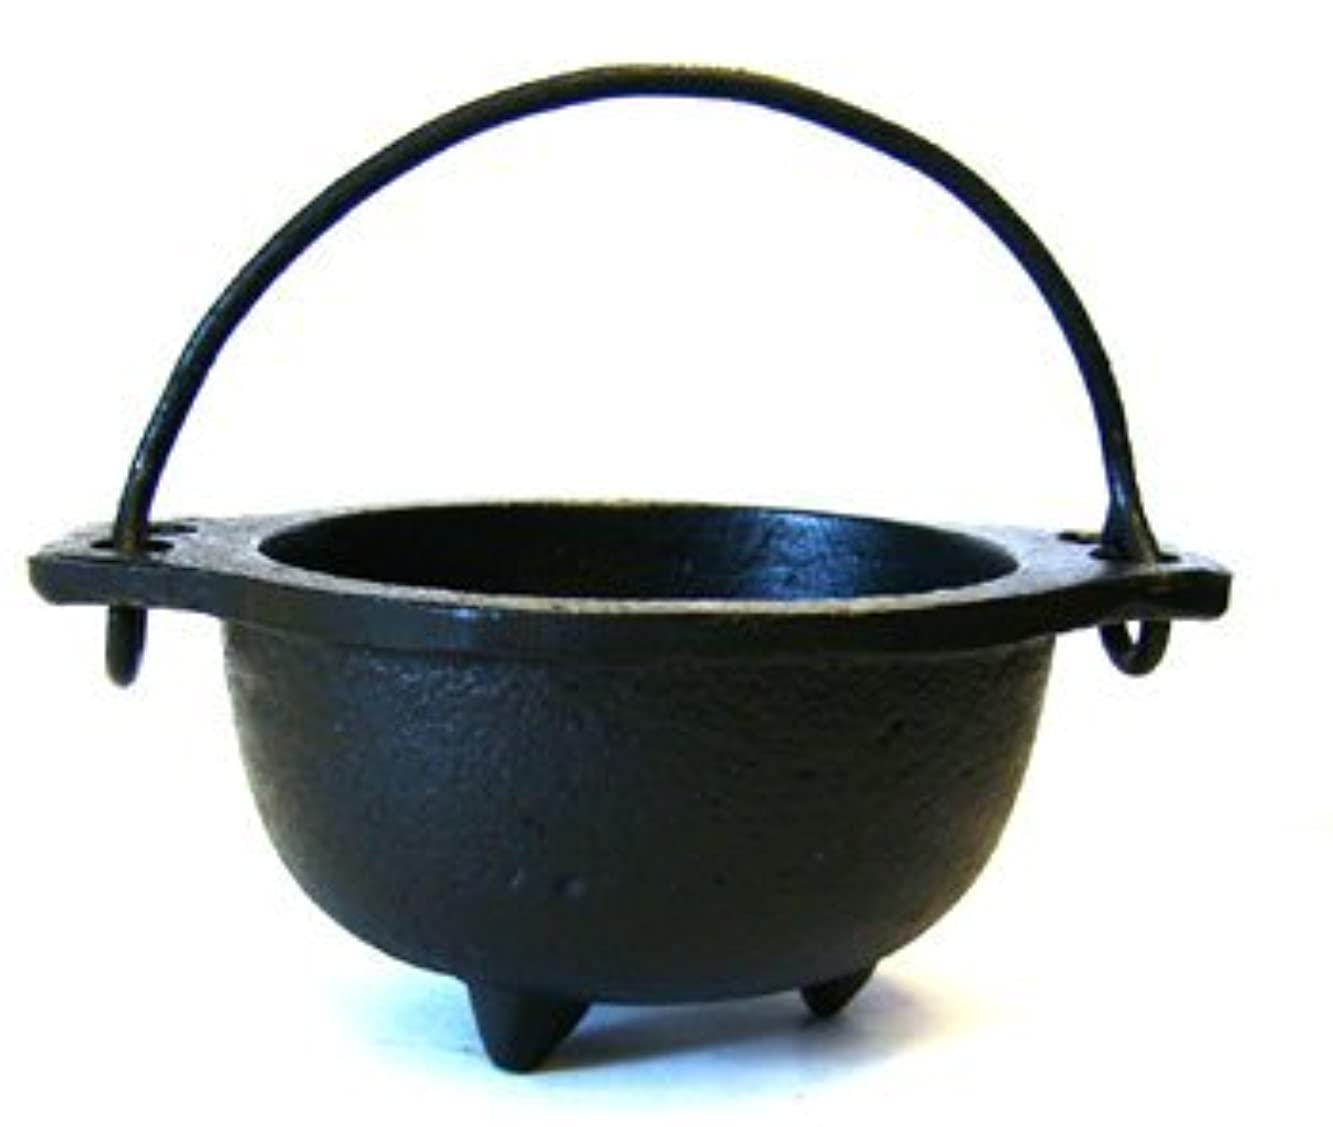 野心雇用ベテラン(6.4cm Diameter) - Cast Iron Cauldron w/handle, ideal for smudging, incense burning, ritual purpose, decoration...